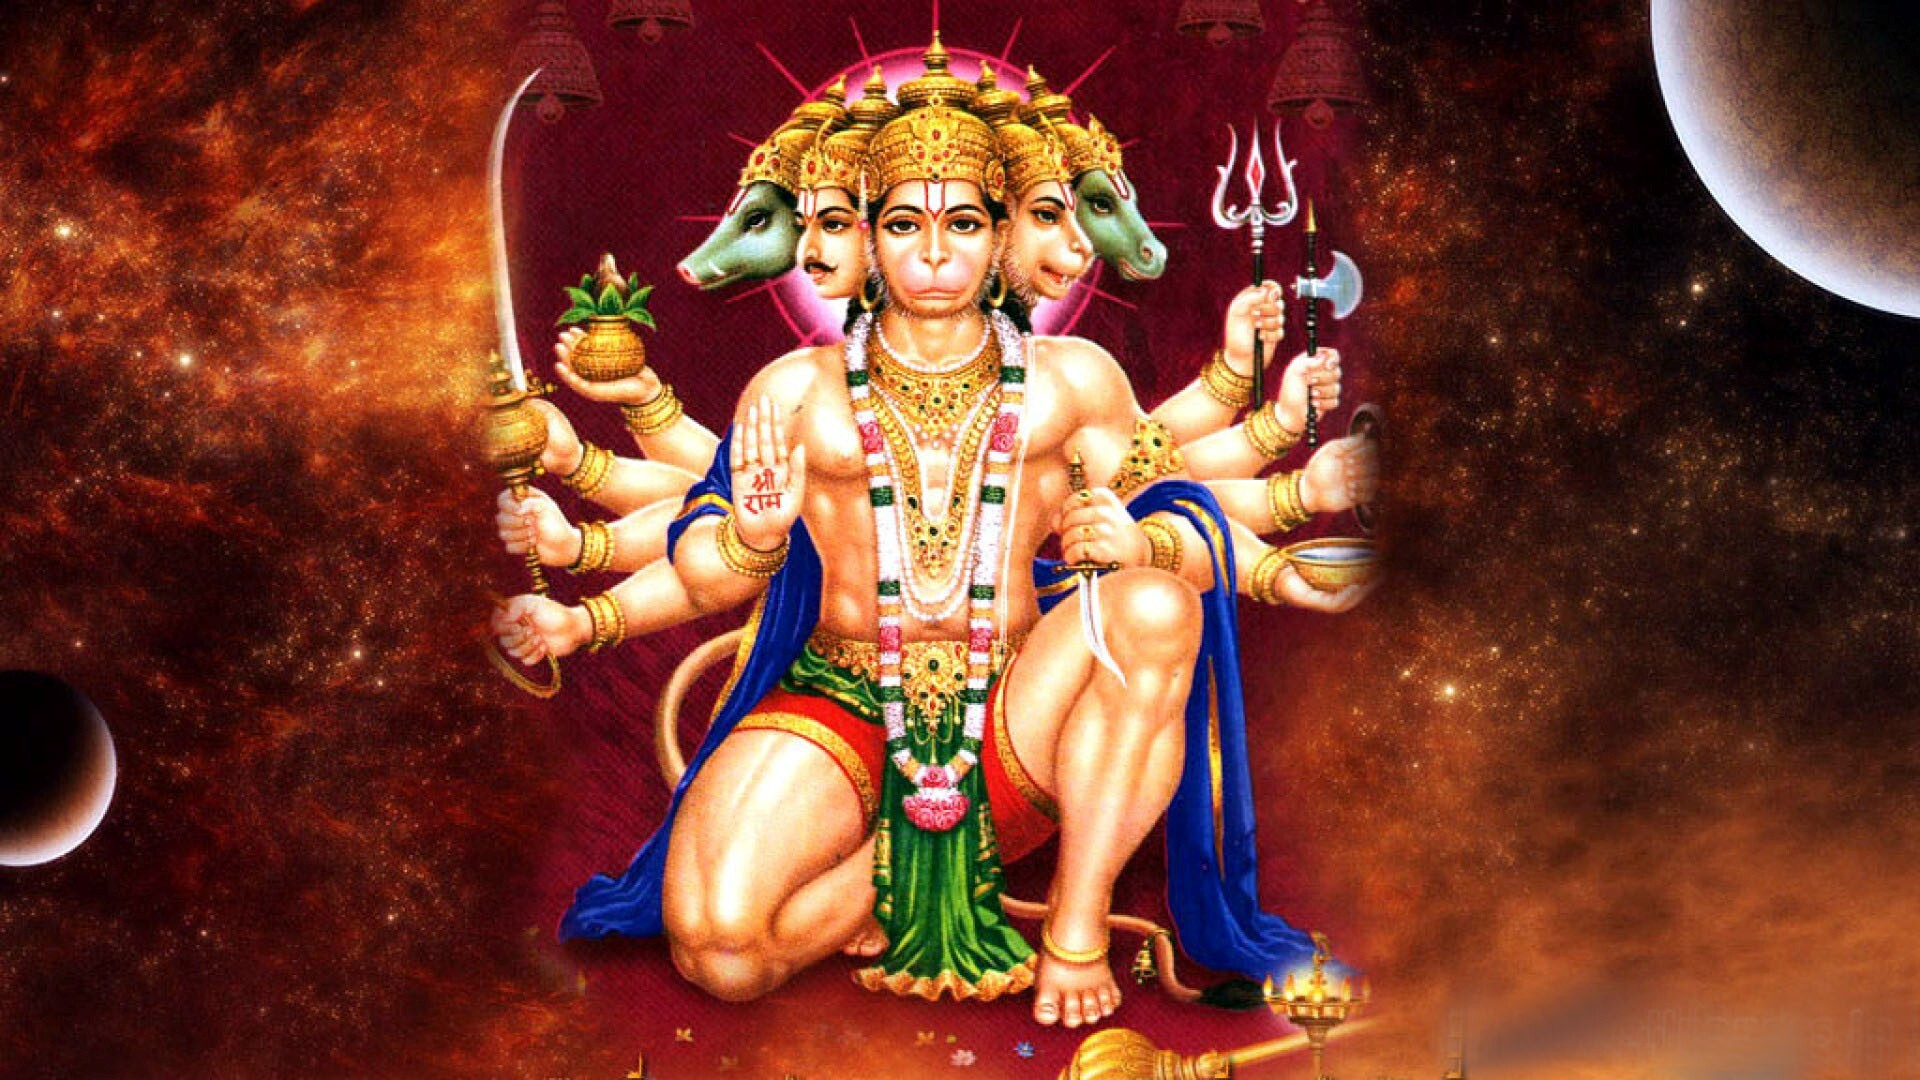 panchmukhi lord hanuman hd wallpapers